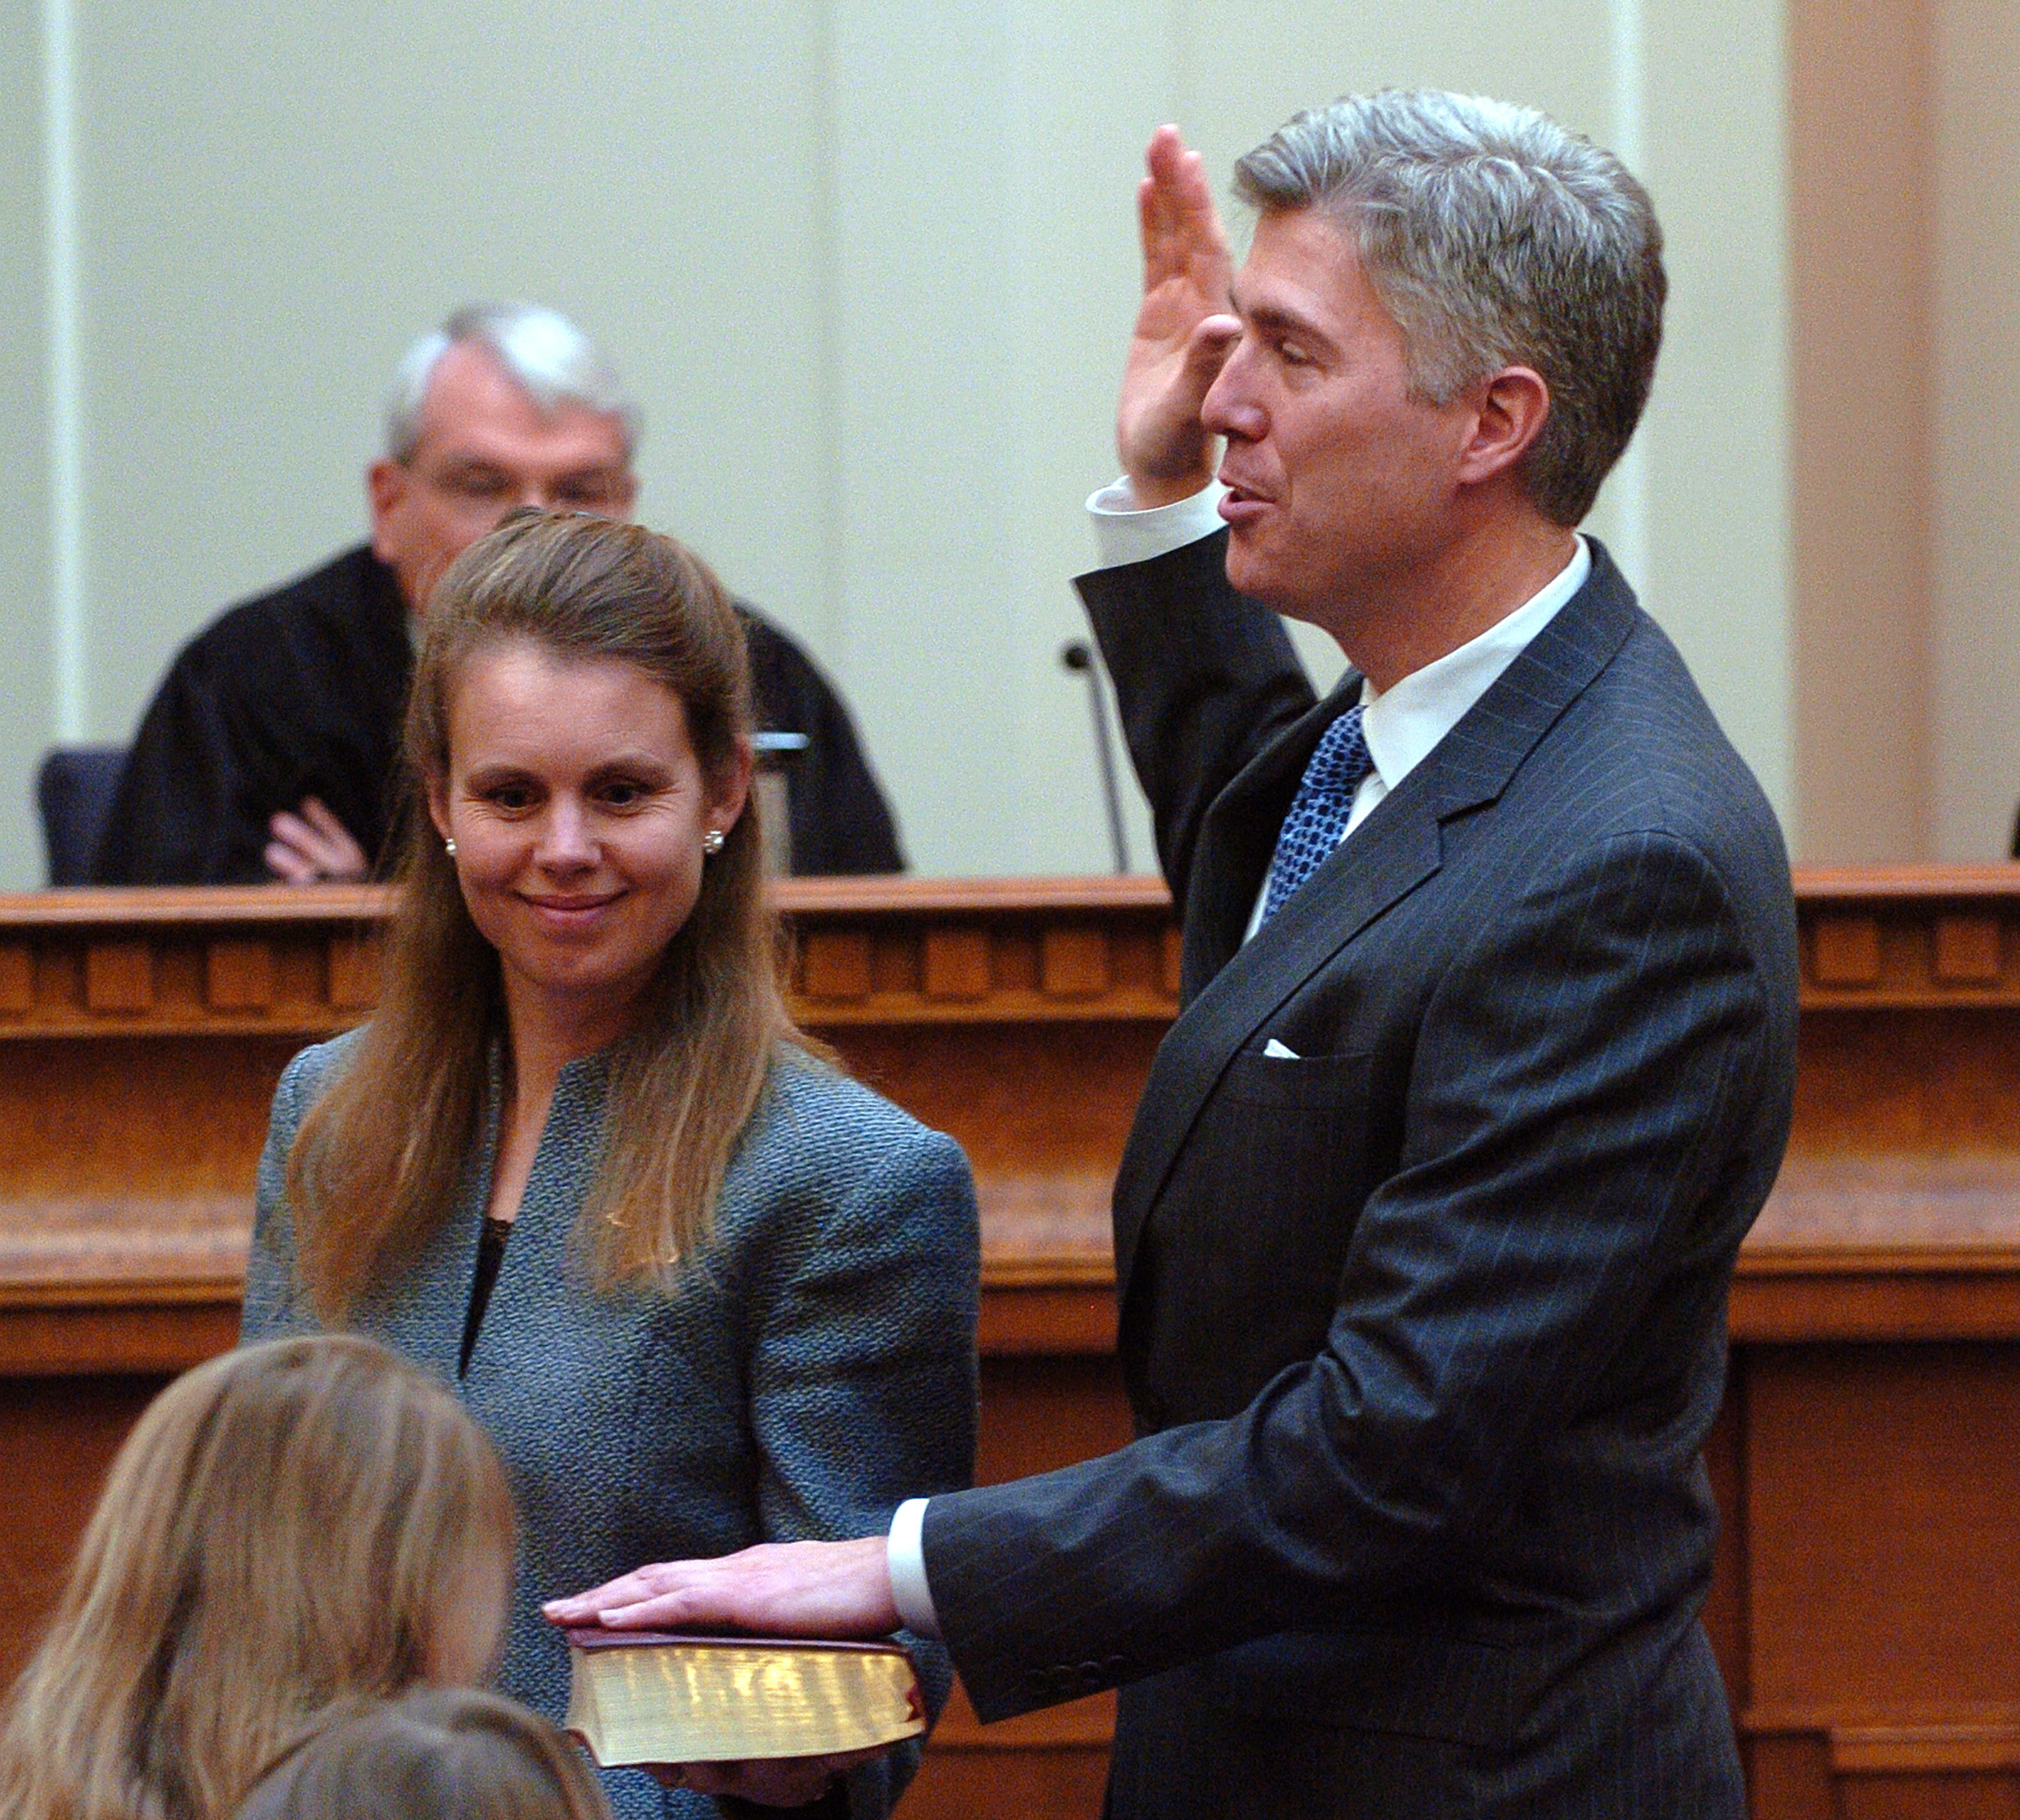 Swearing in of Coloradan Neil M. Gorsuch as the newest member of the, United States Court of Appeals for The Tenth Circuit, with his wife Louise and his two daughters, Nov. 20, 2006, Denver, Colo.